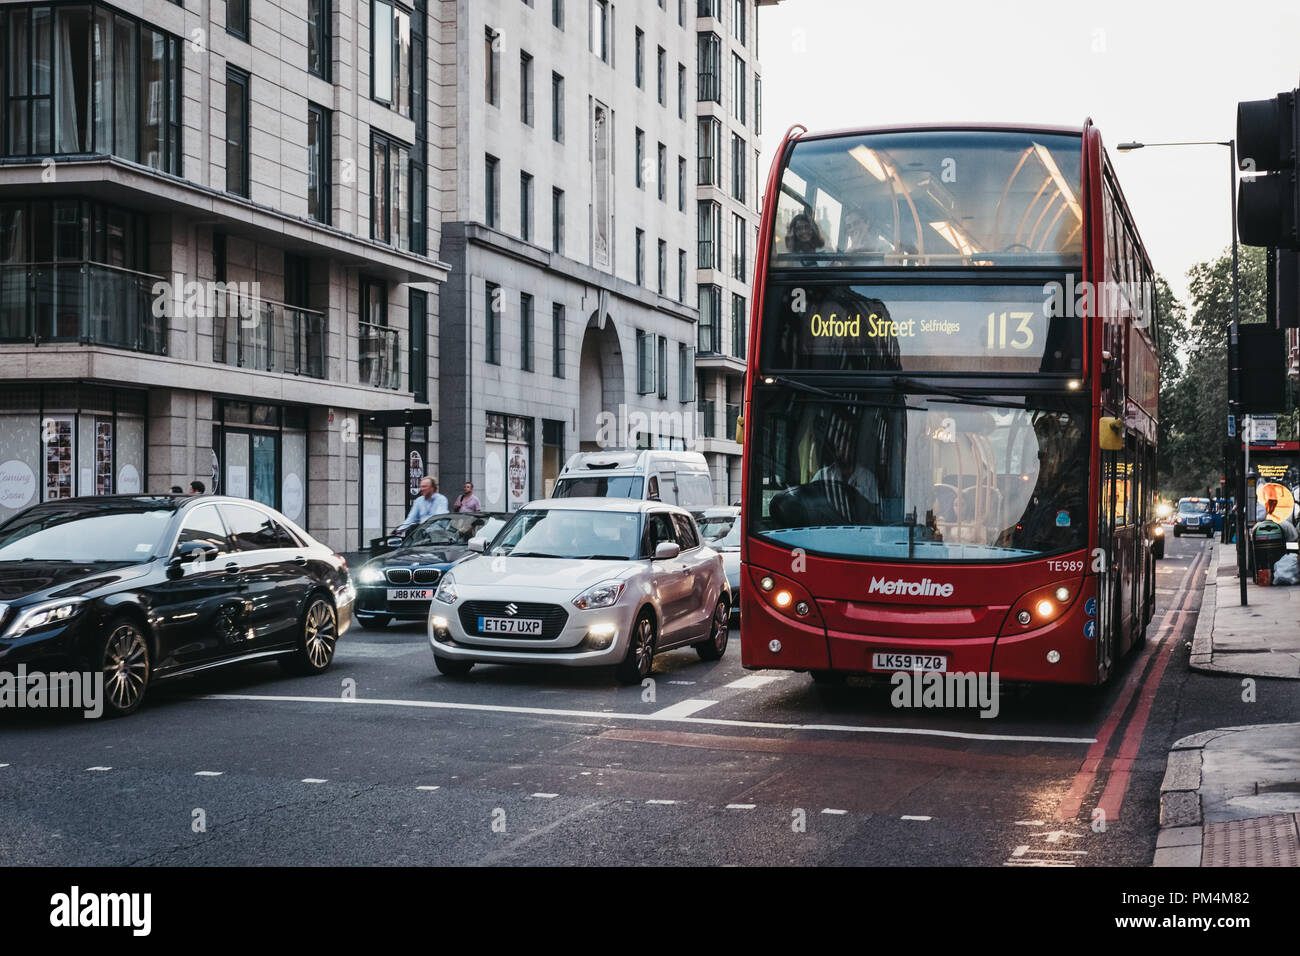 London, UK - July 26, 2018: Cars and a red double decker bus number 113 towards Oxford Street on a street in Marylebone, London, UK, at dusk. Double d Stock Photo